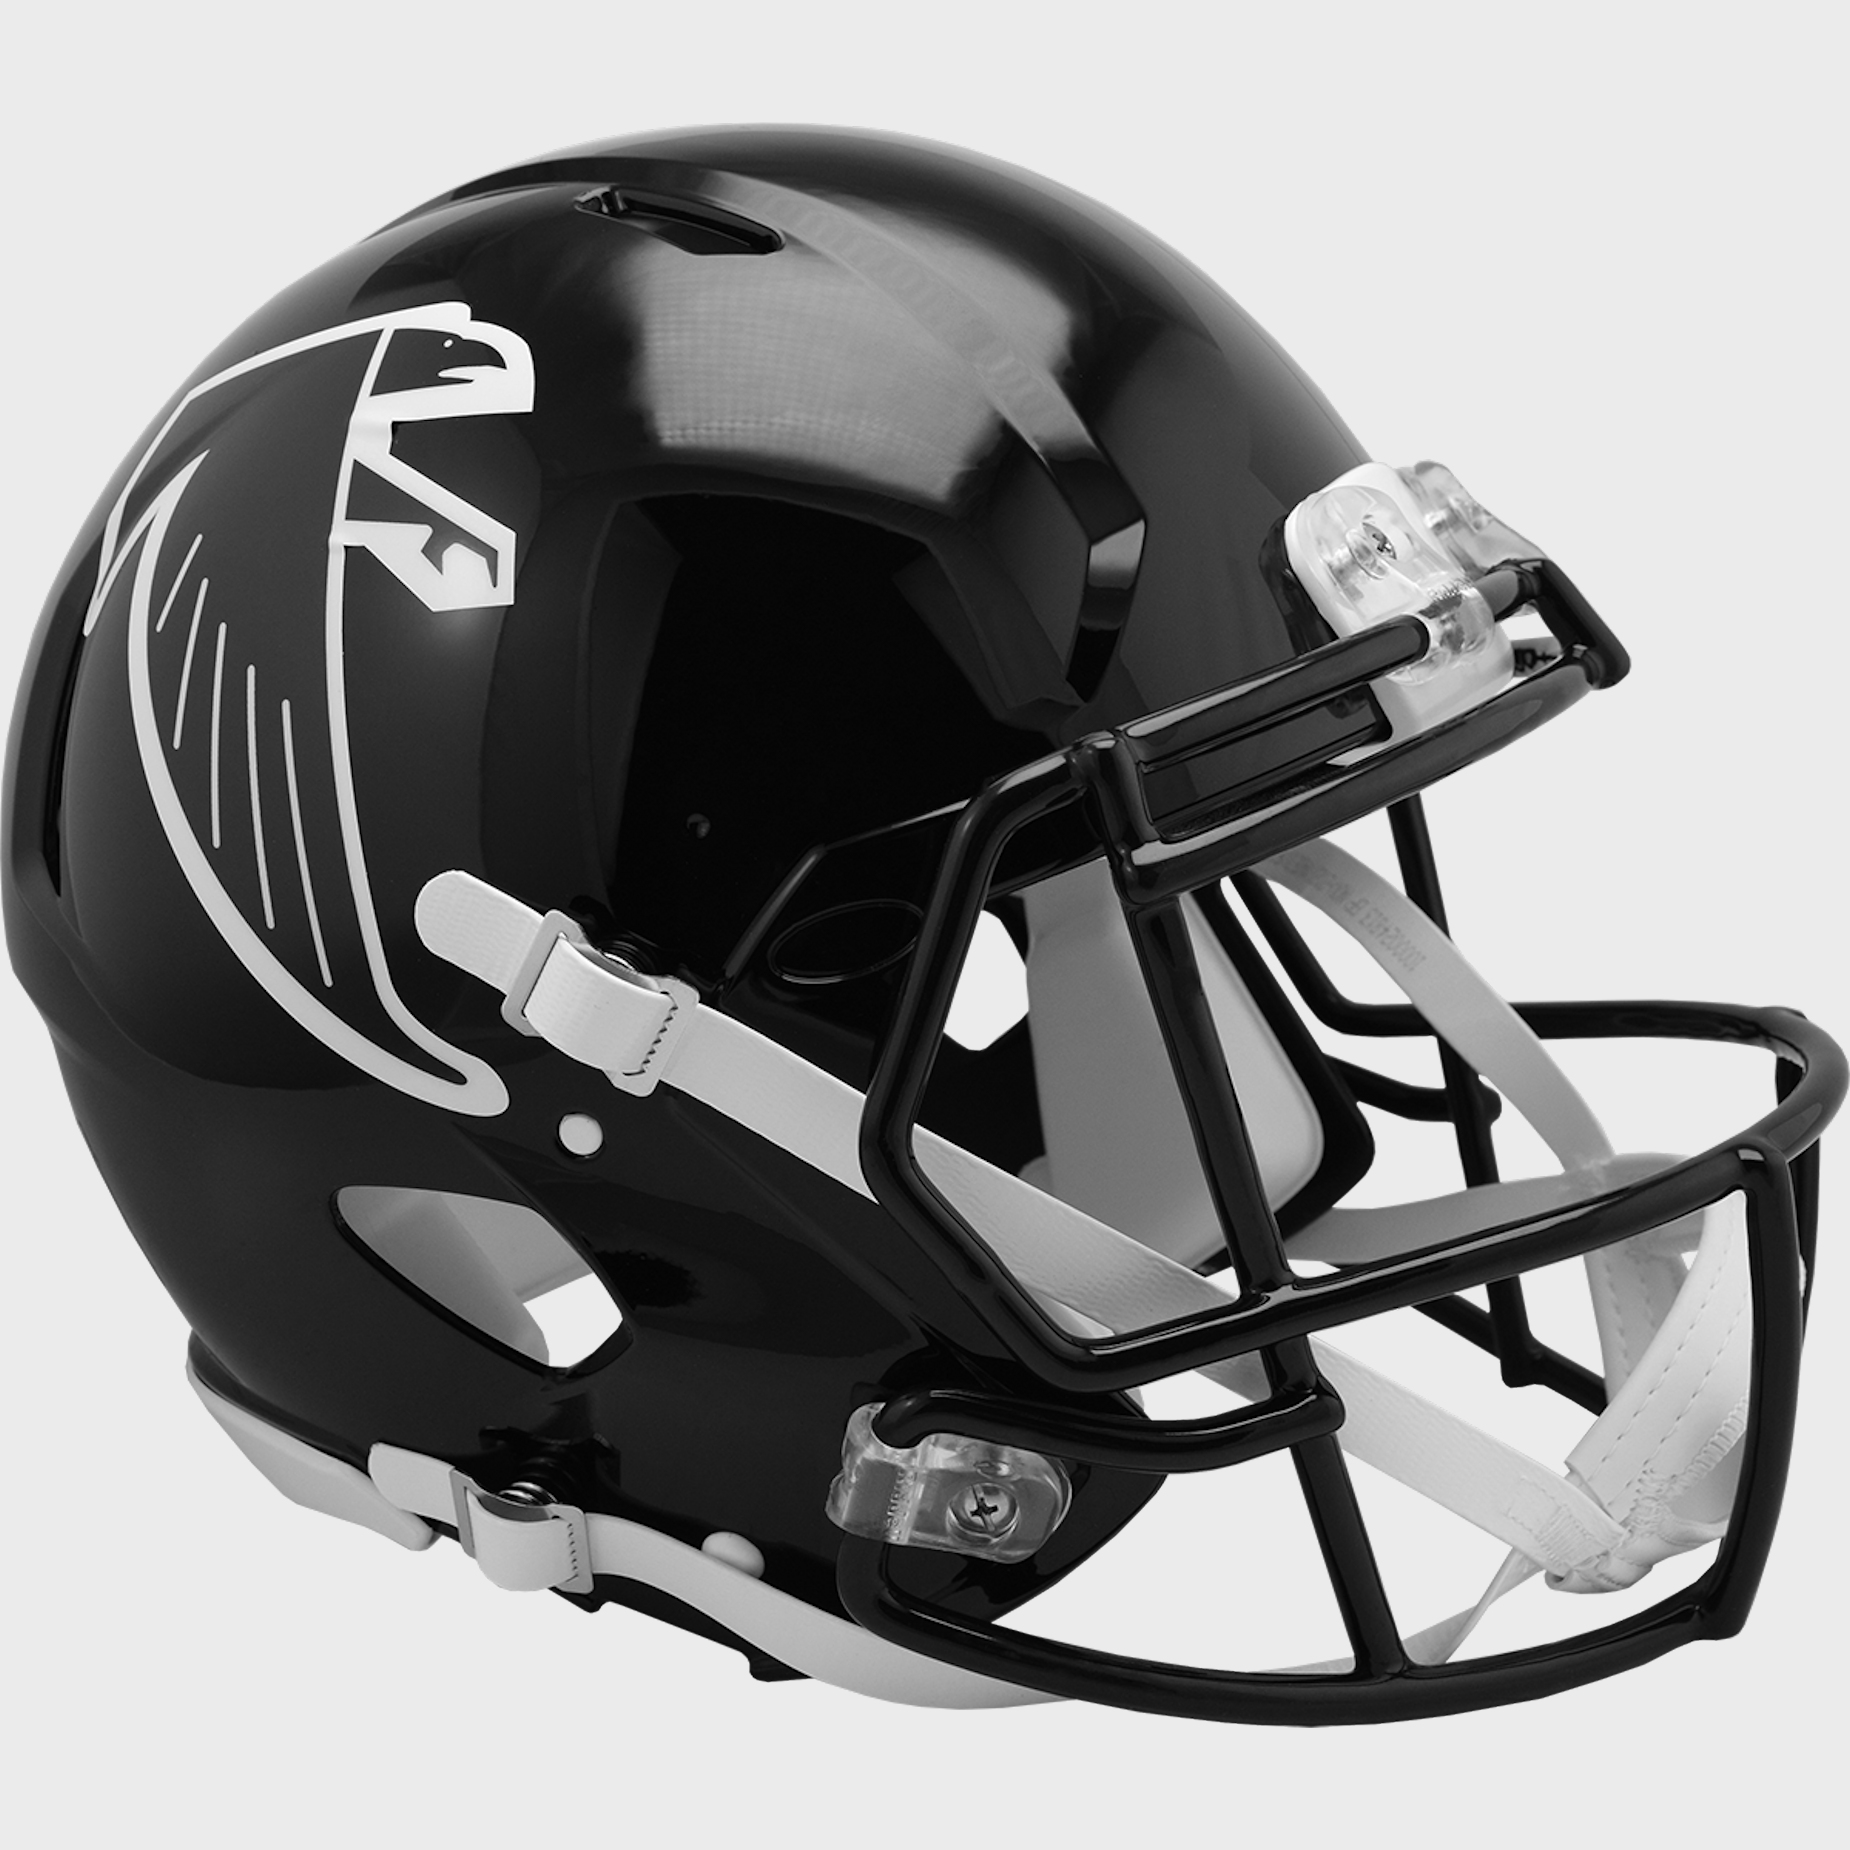 Atlanta Falcons Speed Football Helmet <B>2018 Tribute</B>